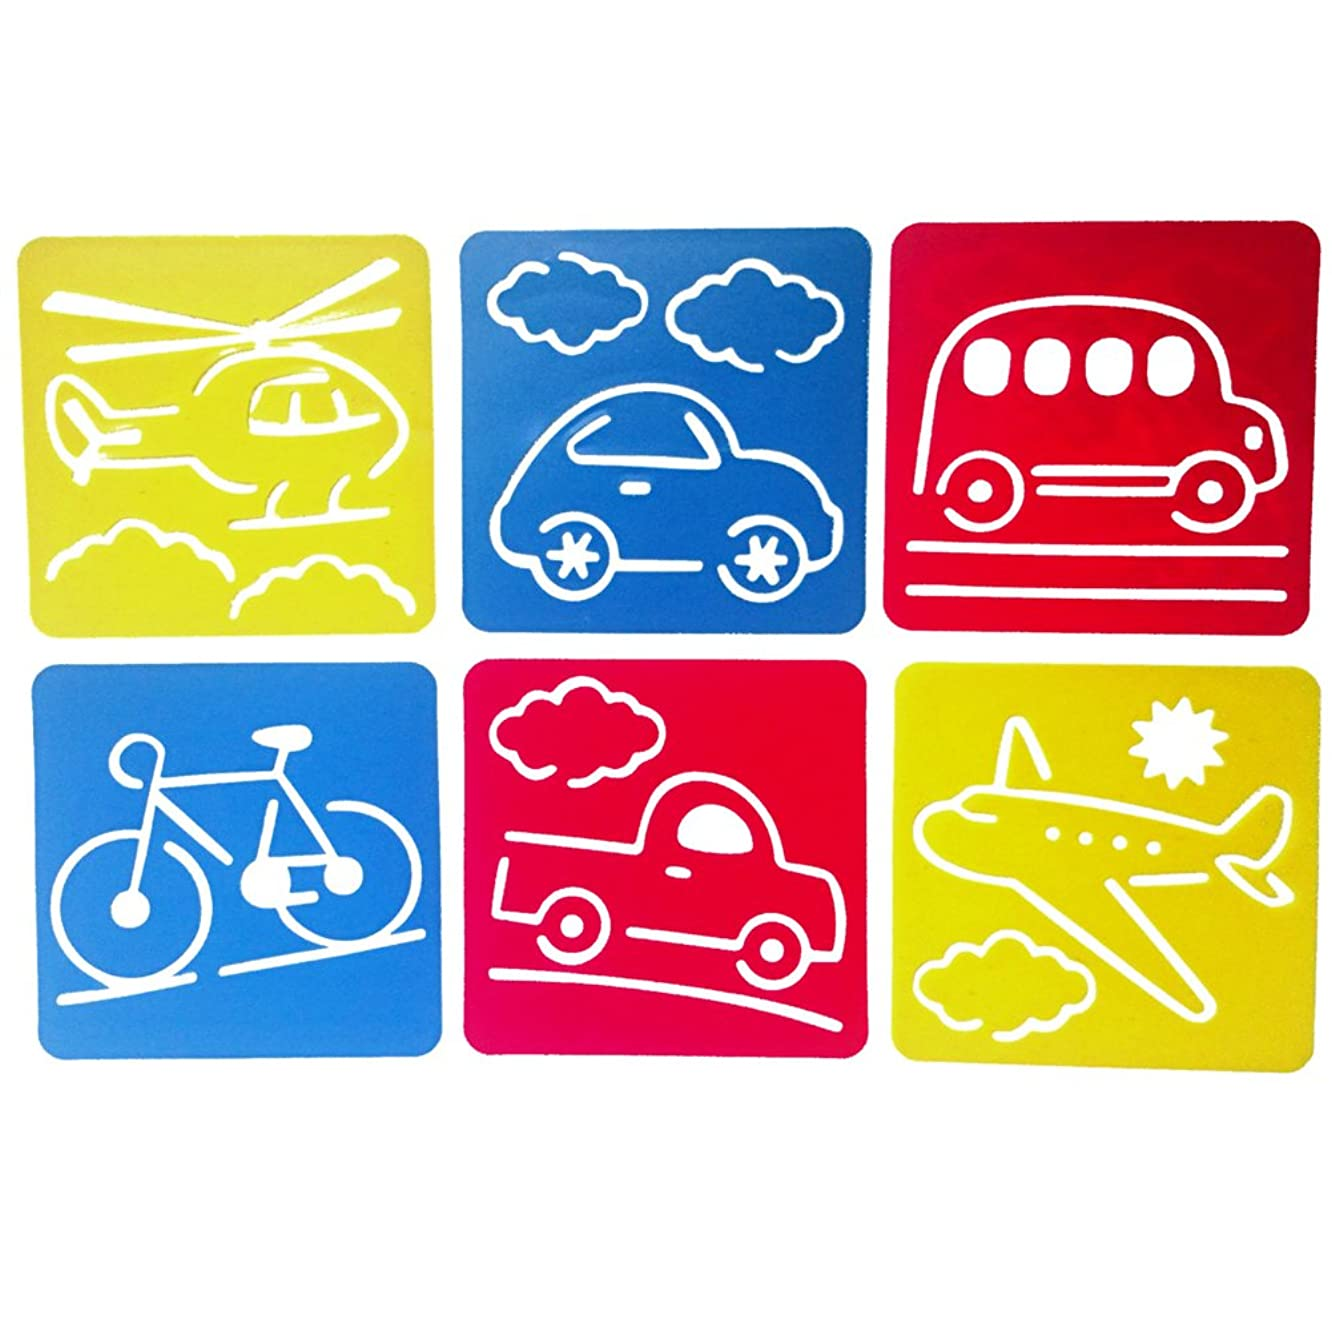 Mike Home 6 Piece Assorted Color Drawing Painting Stencils Templates for Kids (Traffic tools)